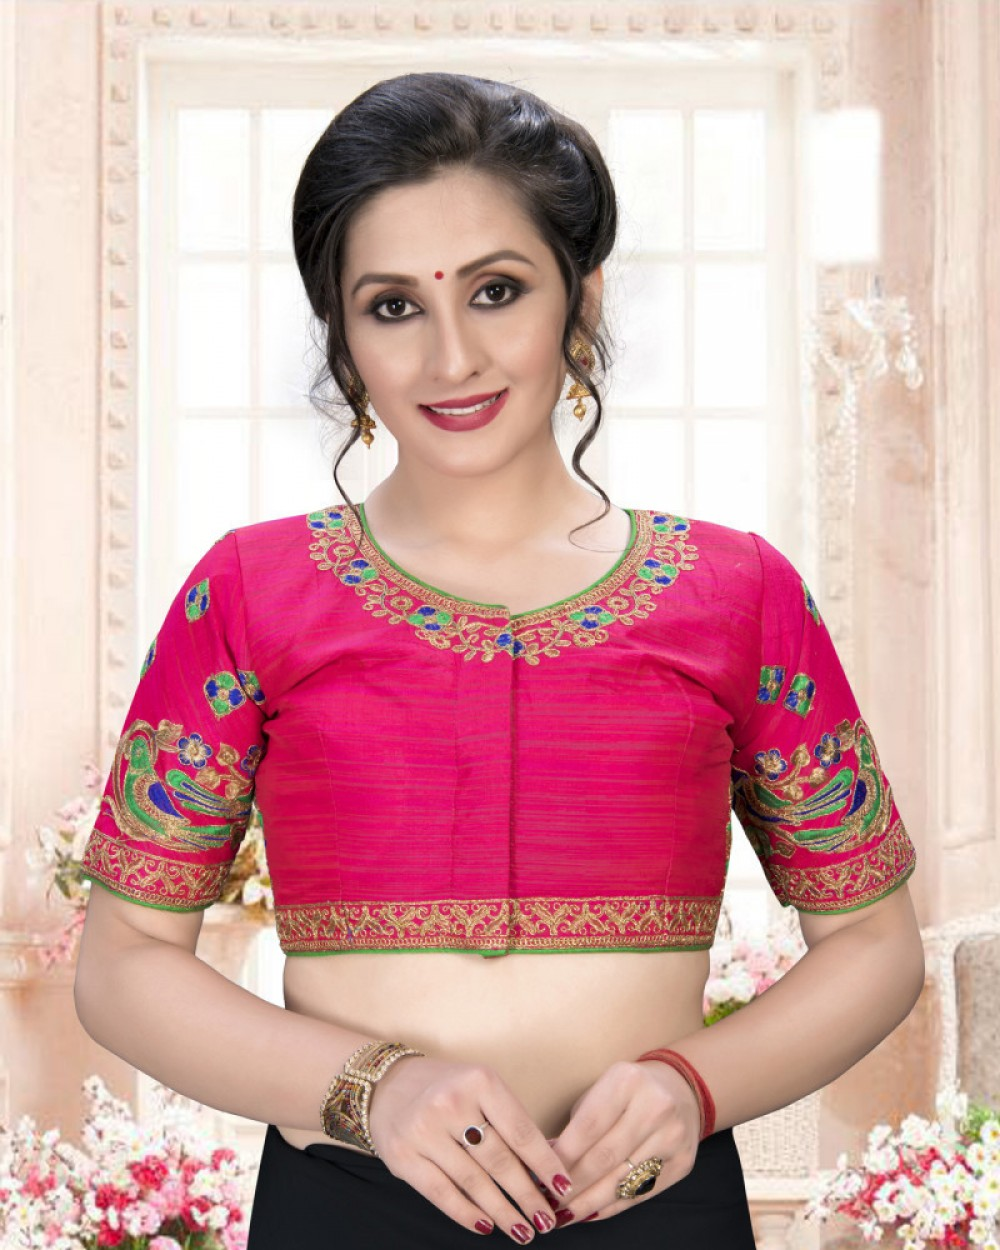 Peacefull Pink Colour Phantom Silk Stylish Blouse for Girls